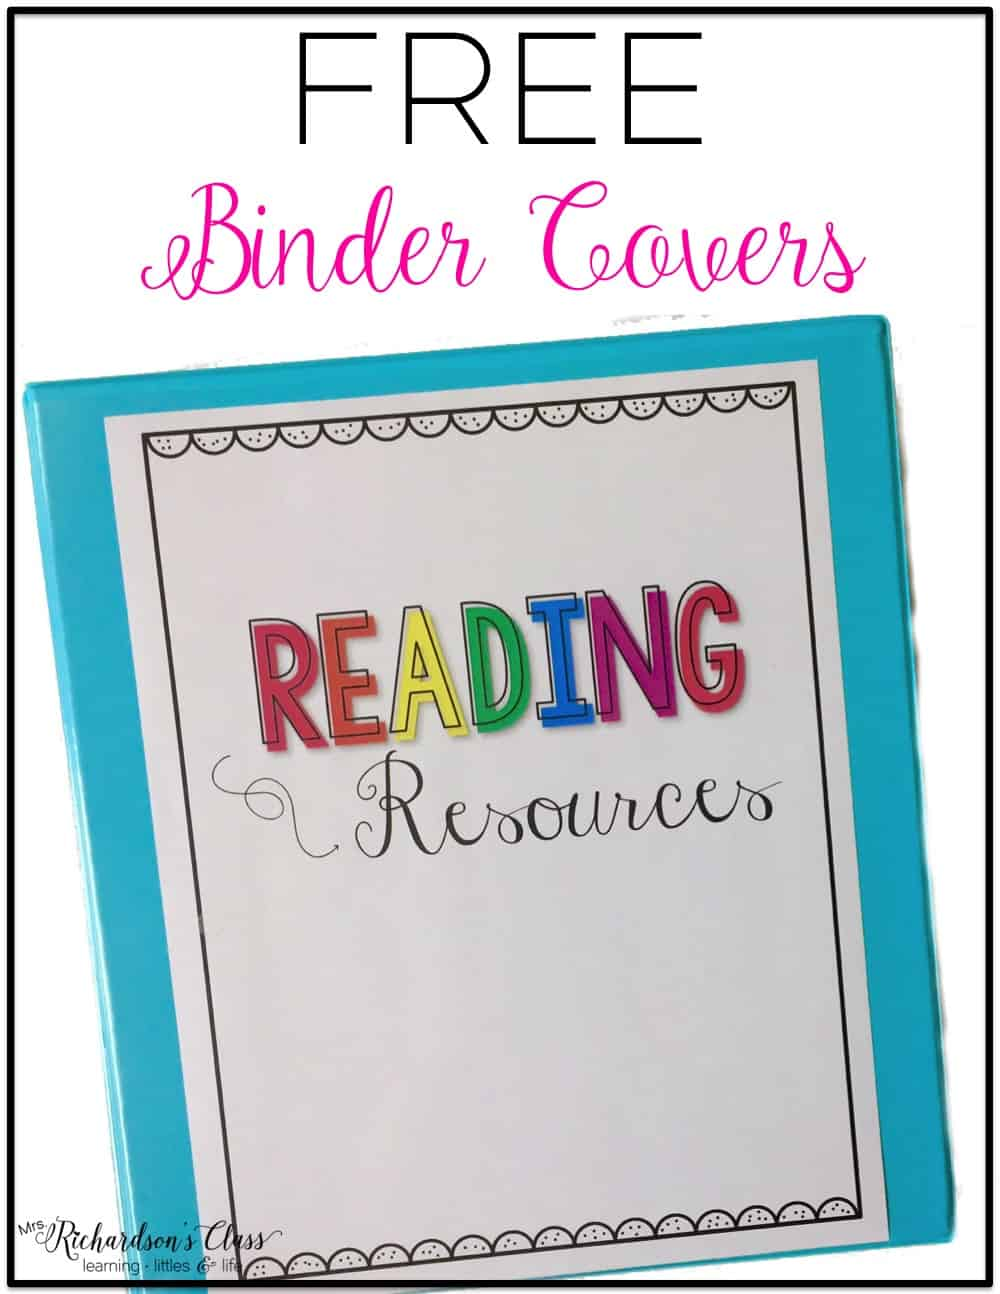 Some FREE binder covers and spine labels to help keep classroom organization under control. These printables are both cute and functional! #classroomorganization #elementary #middle #free #printables